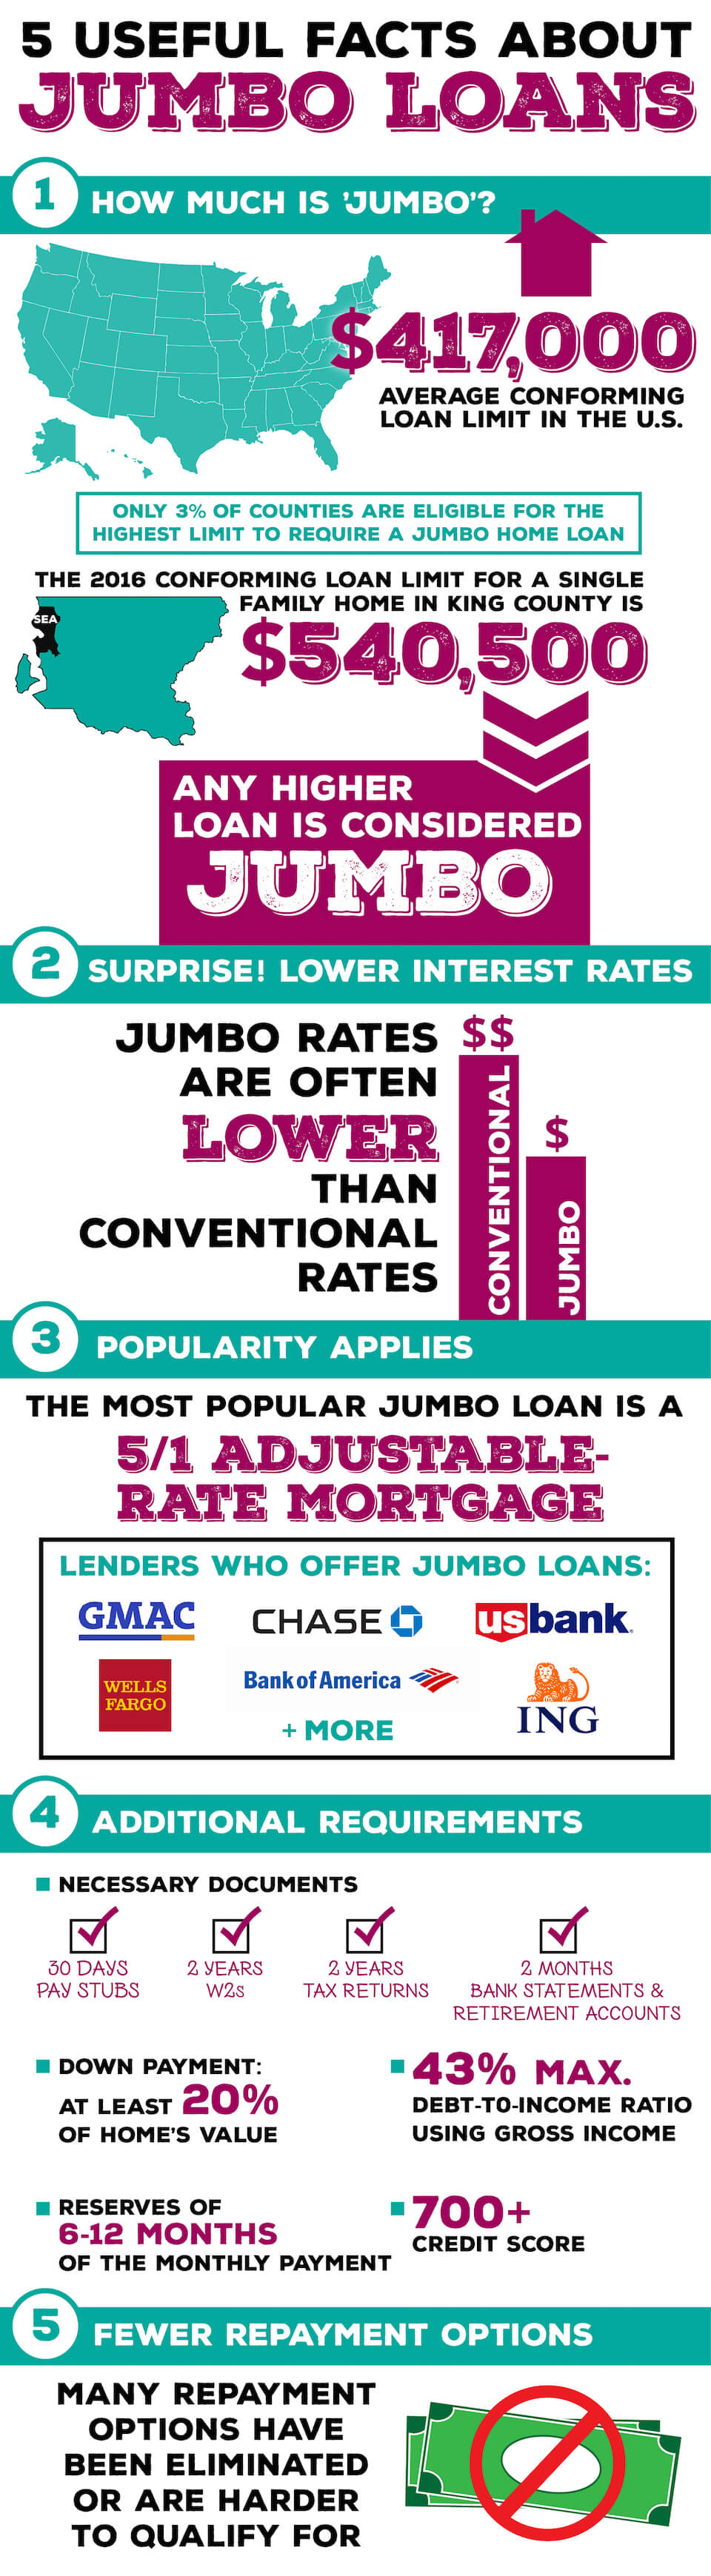 Useful Facts About Jumbo Loans [INFOGRAPHIC]